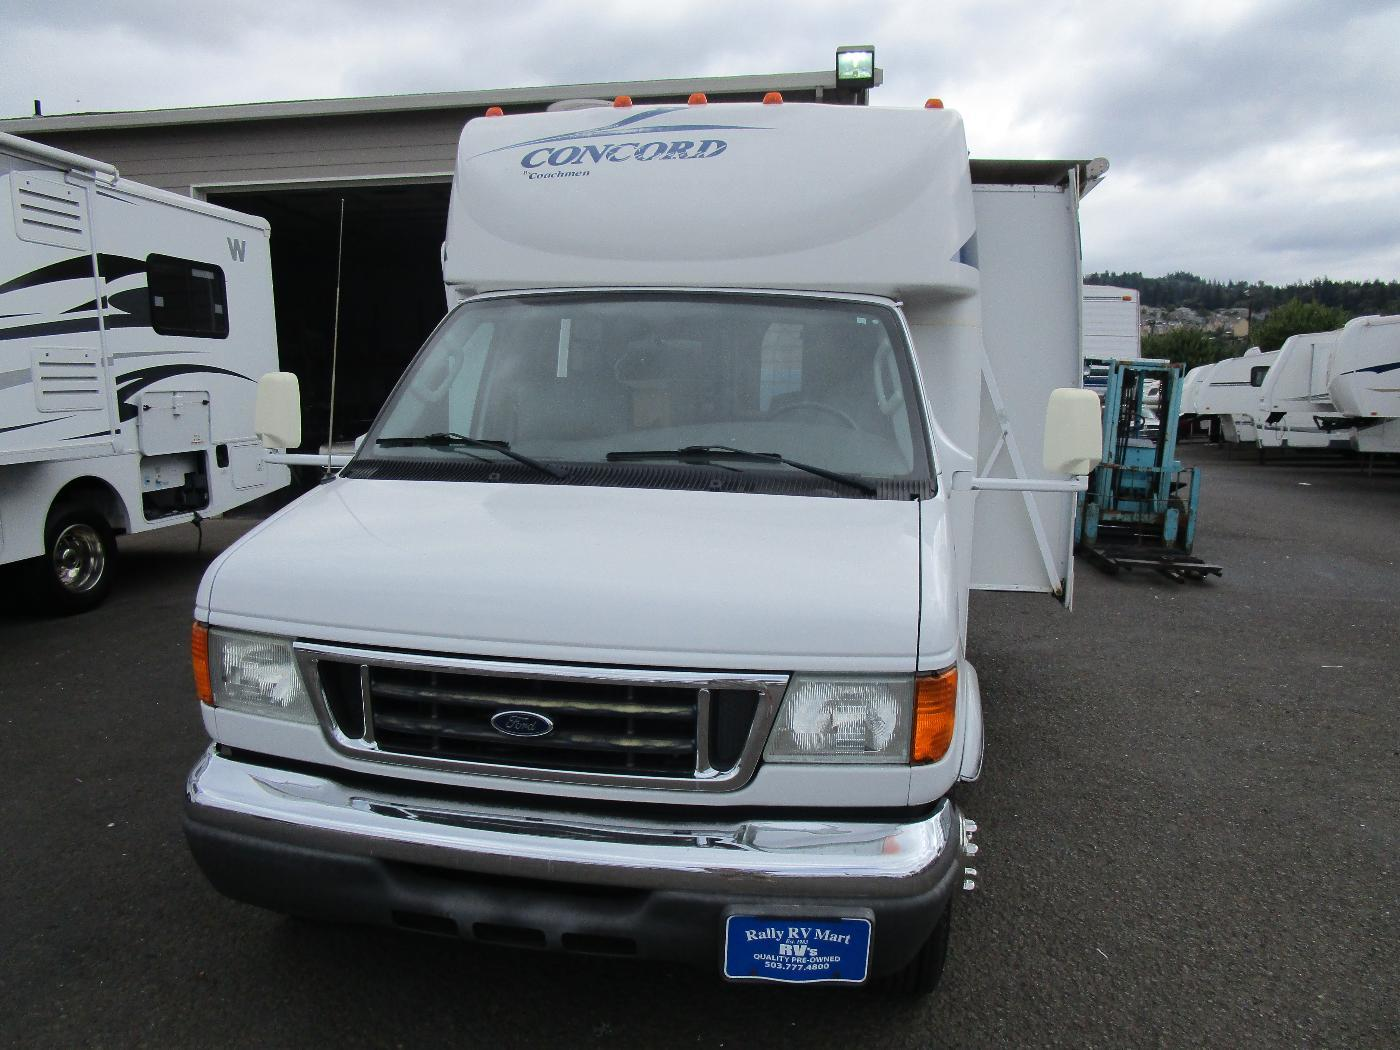 Used, 2005, Coachmen, CONCORD 275DSO ONLY 29K MILES, RV - Class B